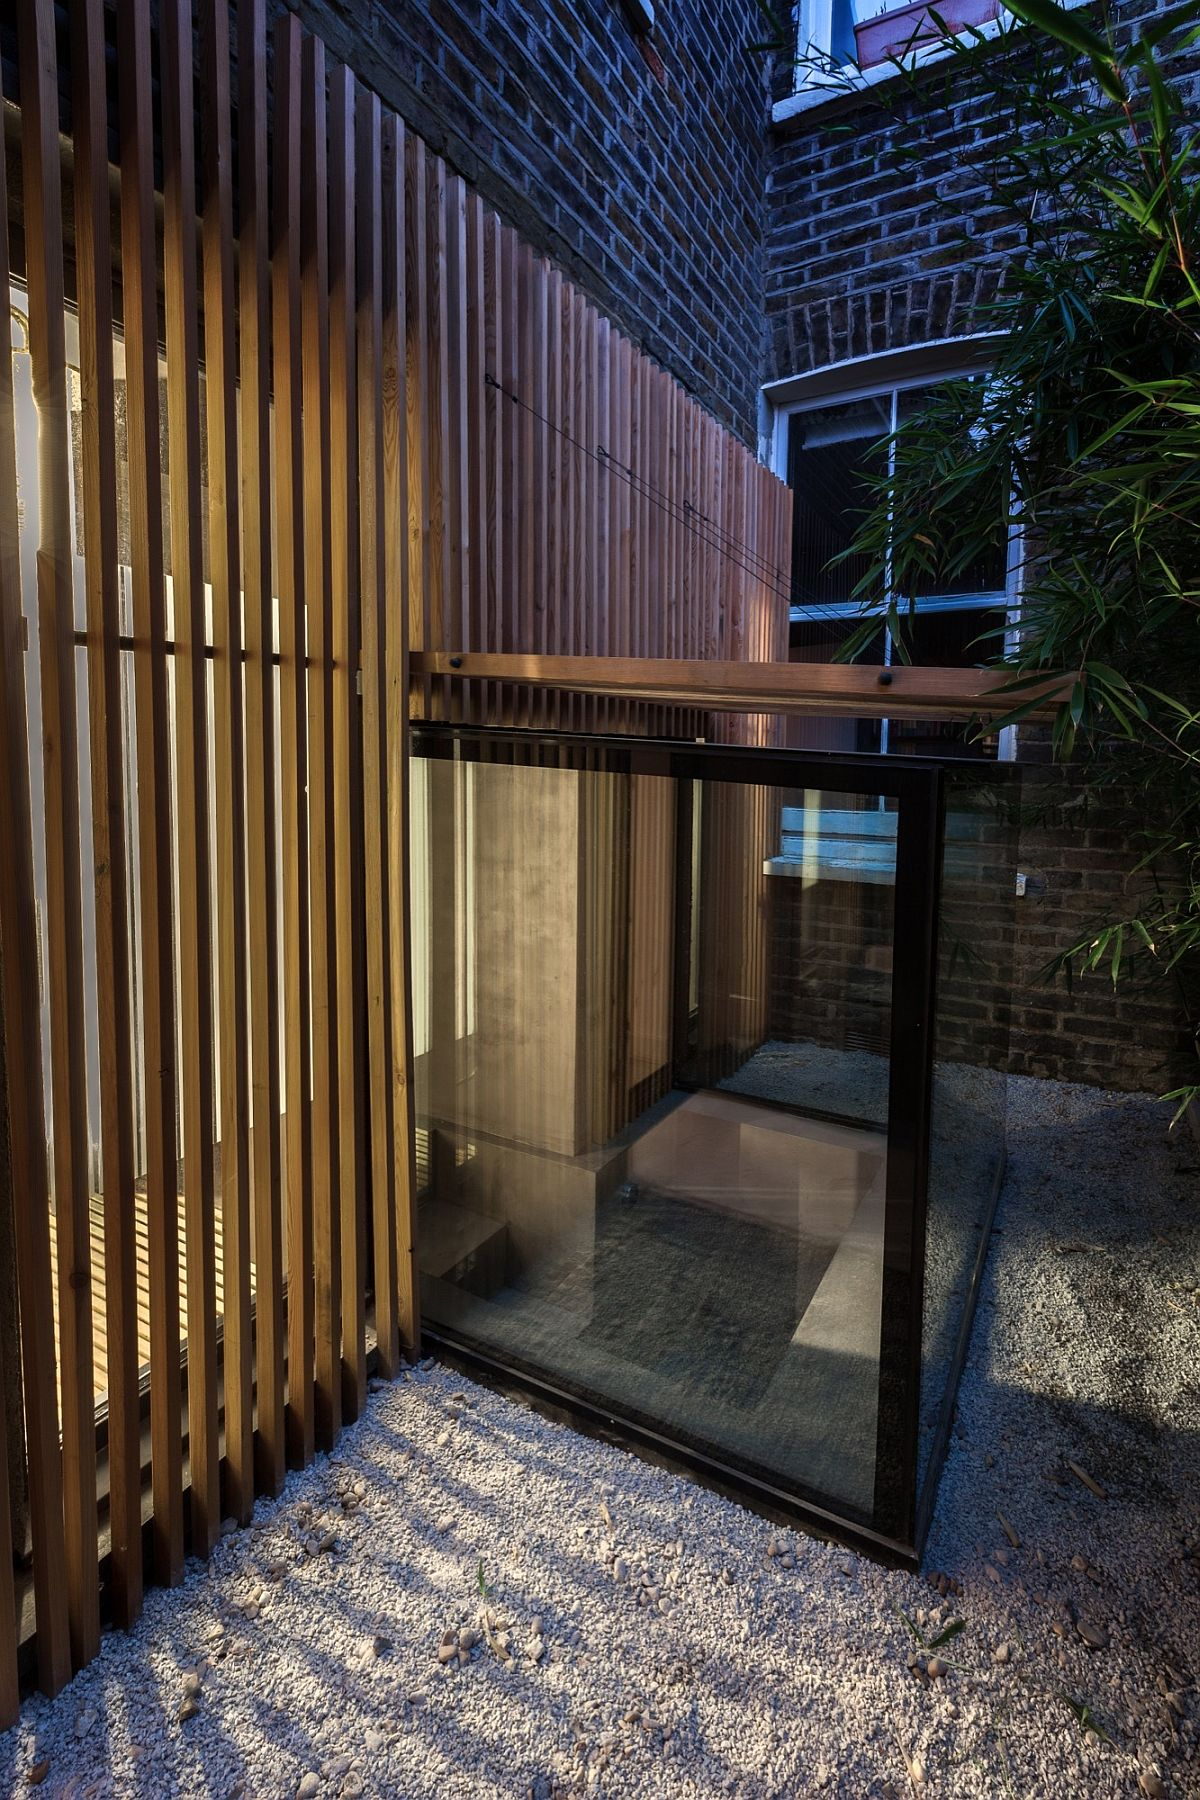 Granite gravel, polished concrete and bamboo shape thegarden around the sunken bath